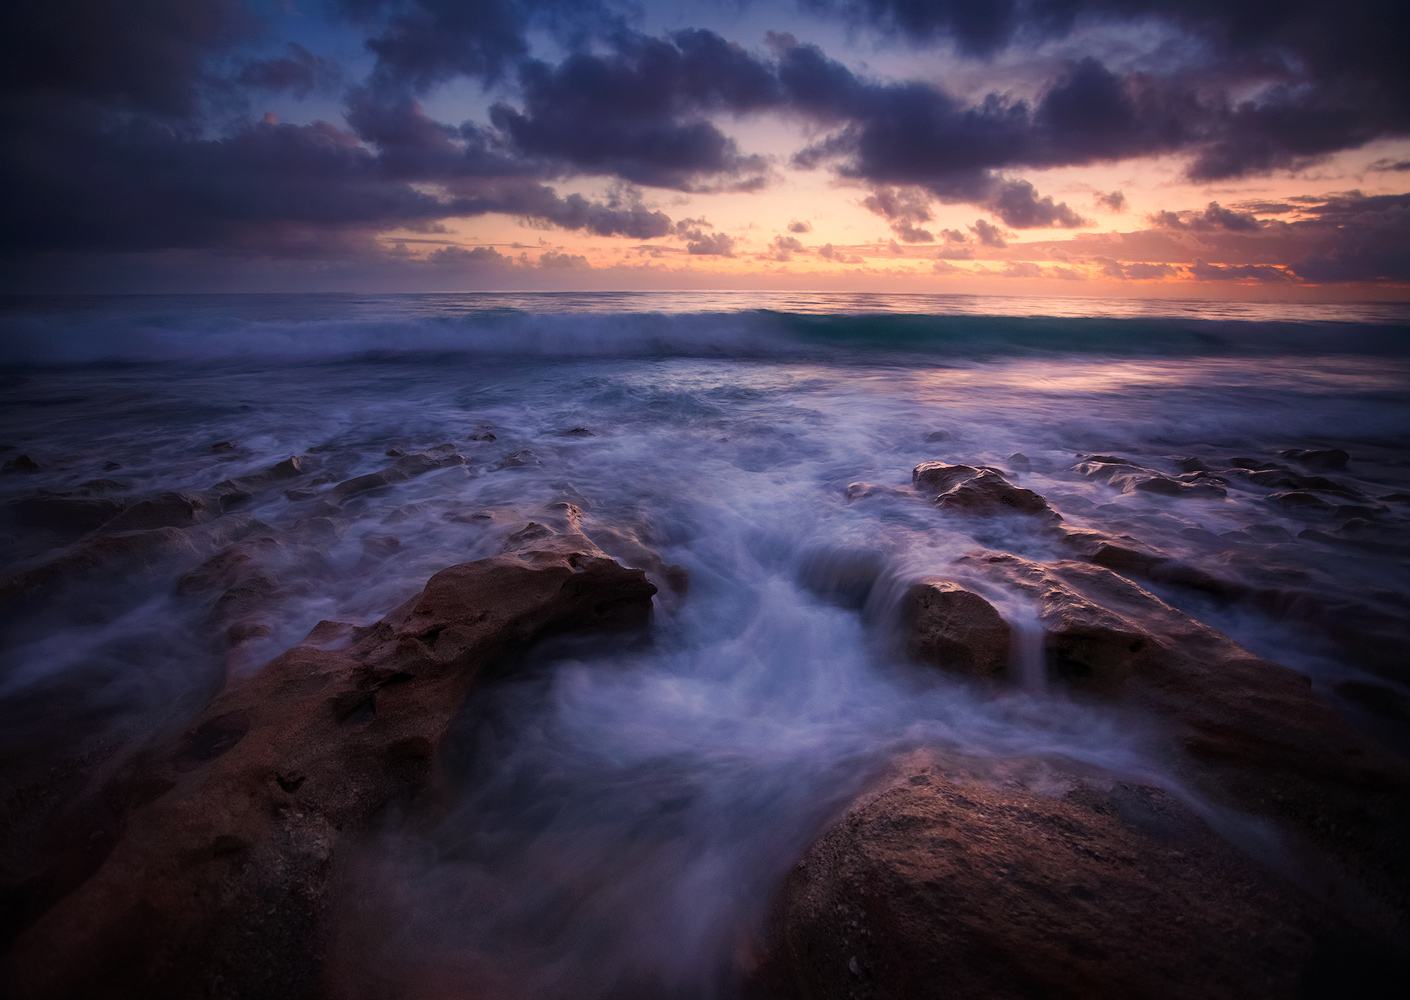 anastasia limestone, florida, sunrise, waves, ocean, dawn, Patrick Zephyr Photography, photo